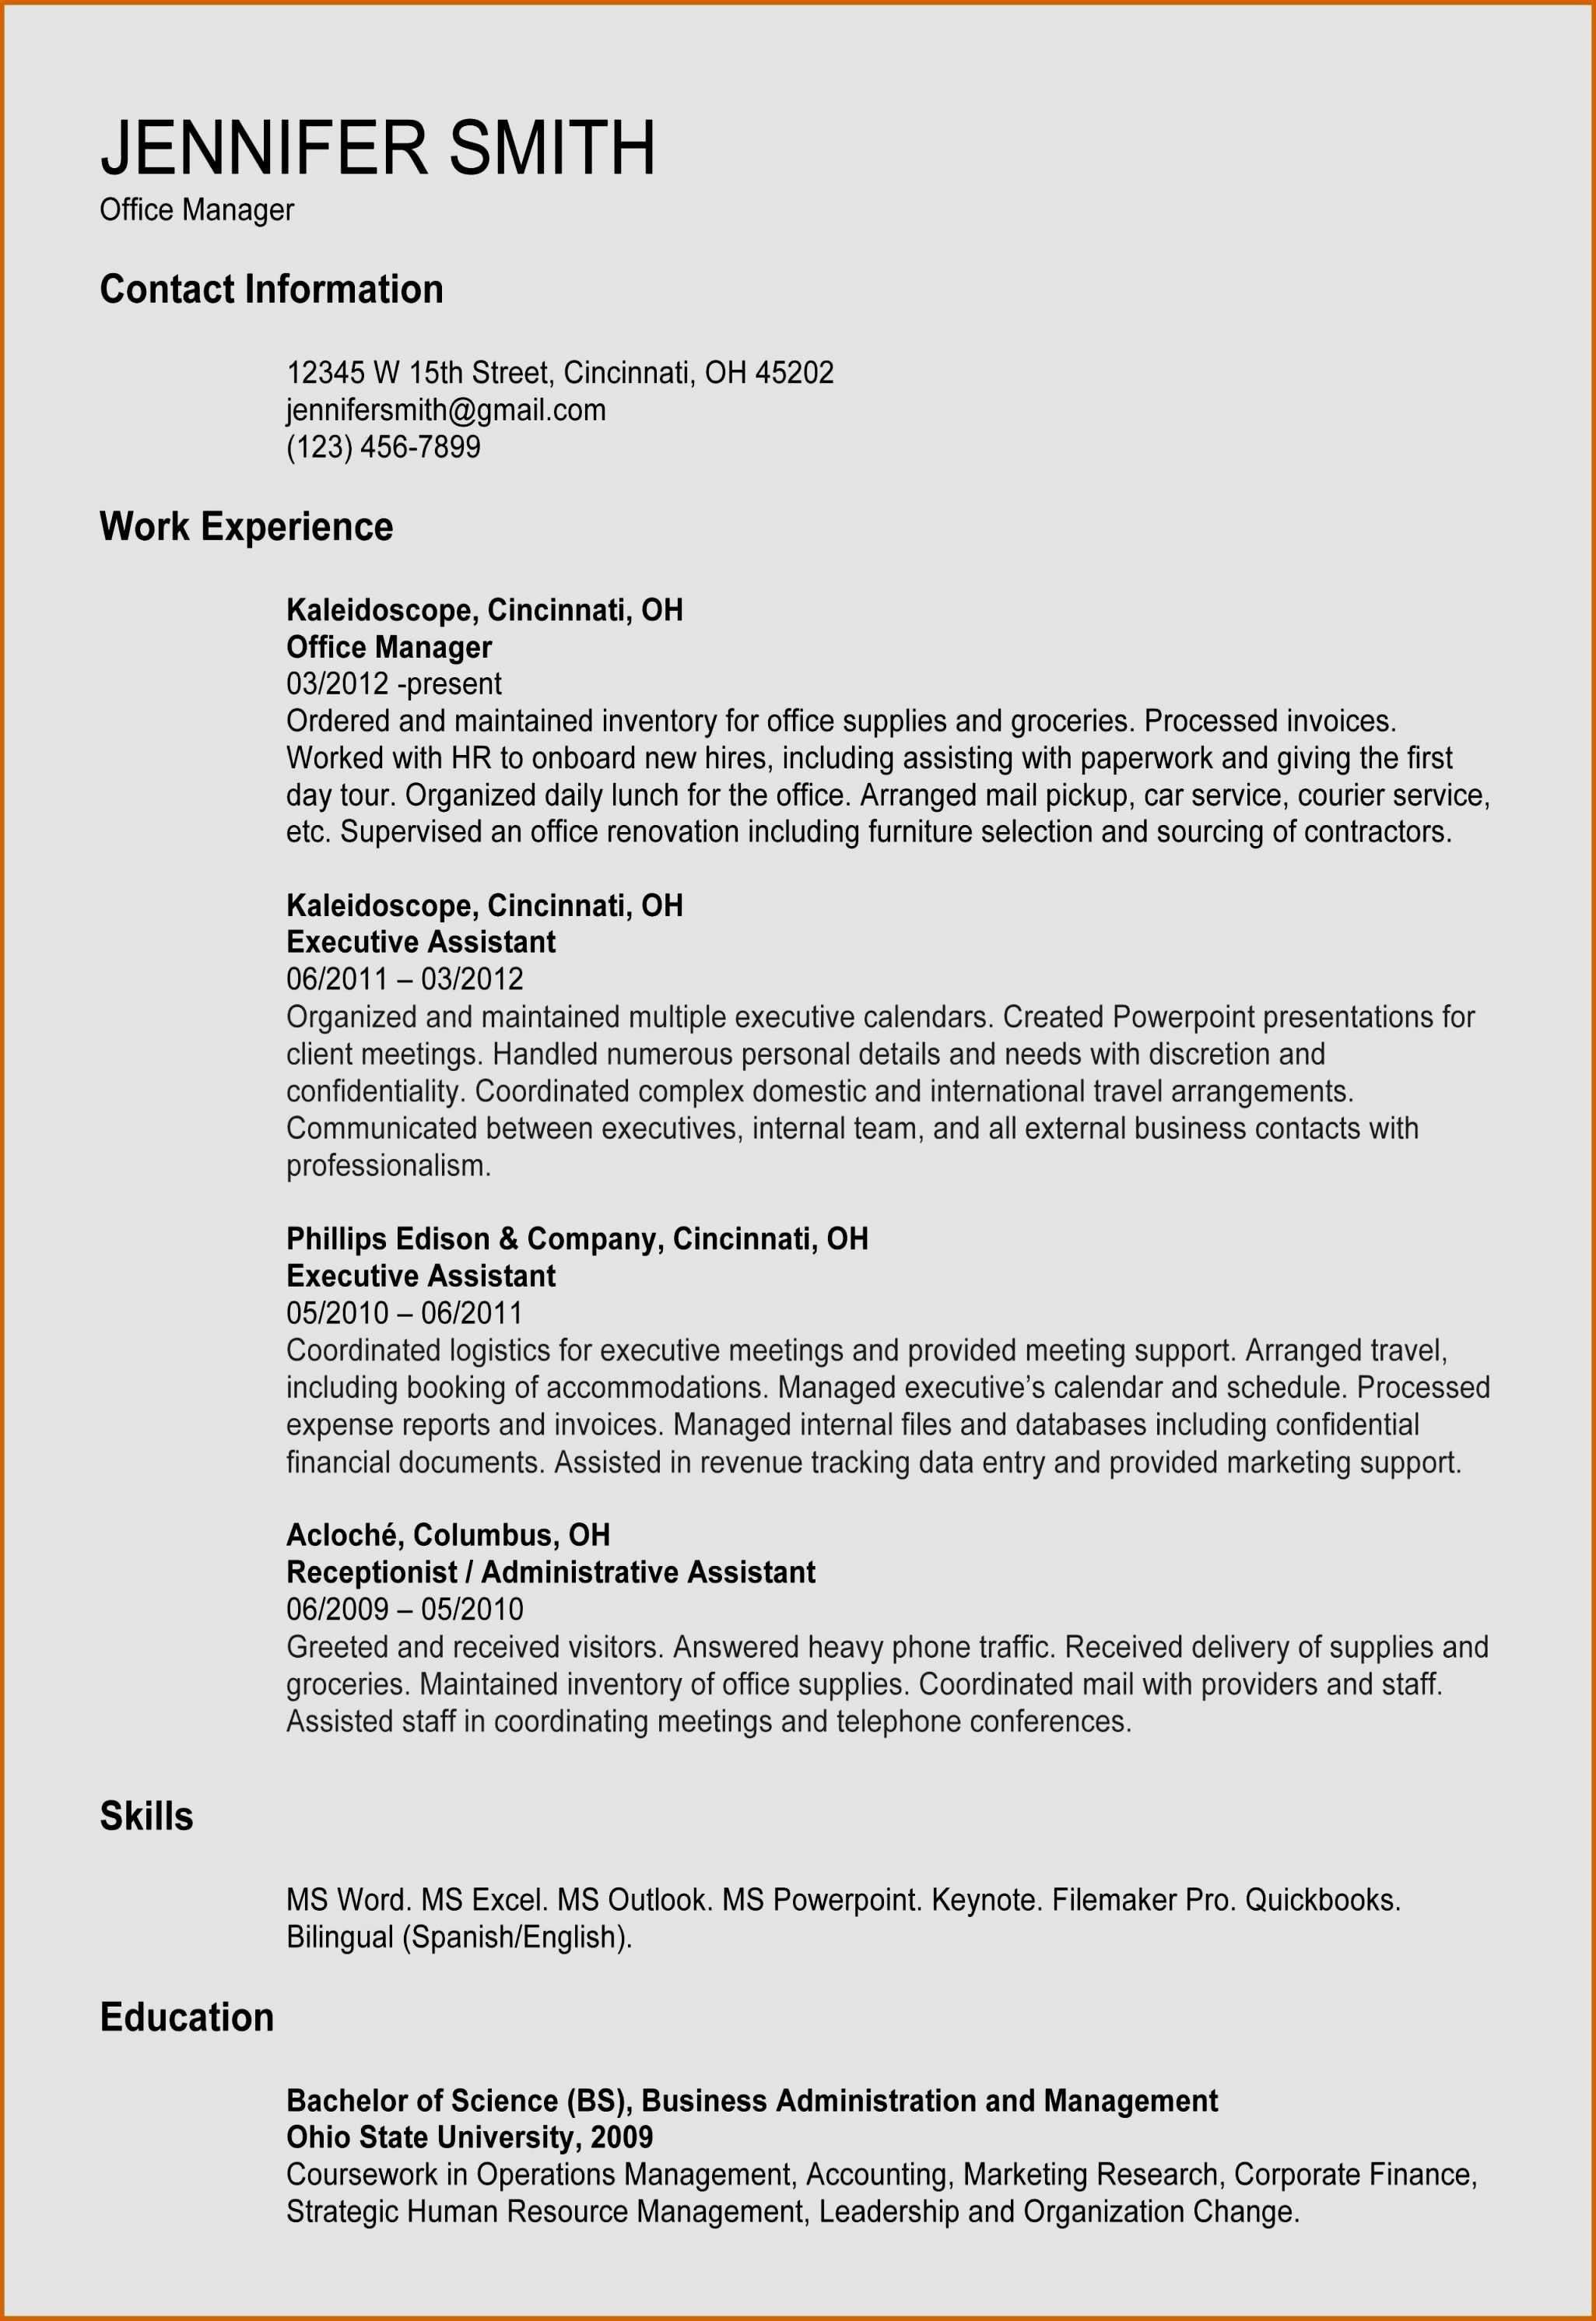 office manager resume template free example-Examples Cover Letter for Resume Beautiful Administrative assistant Resume Template Od Specialist Cover Letter 17-k